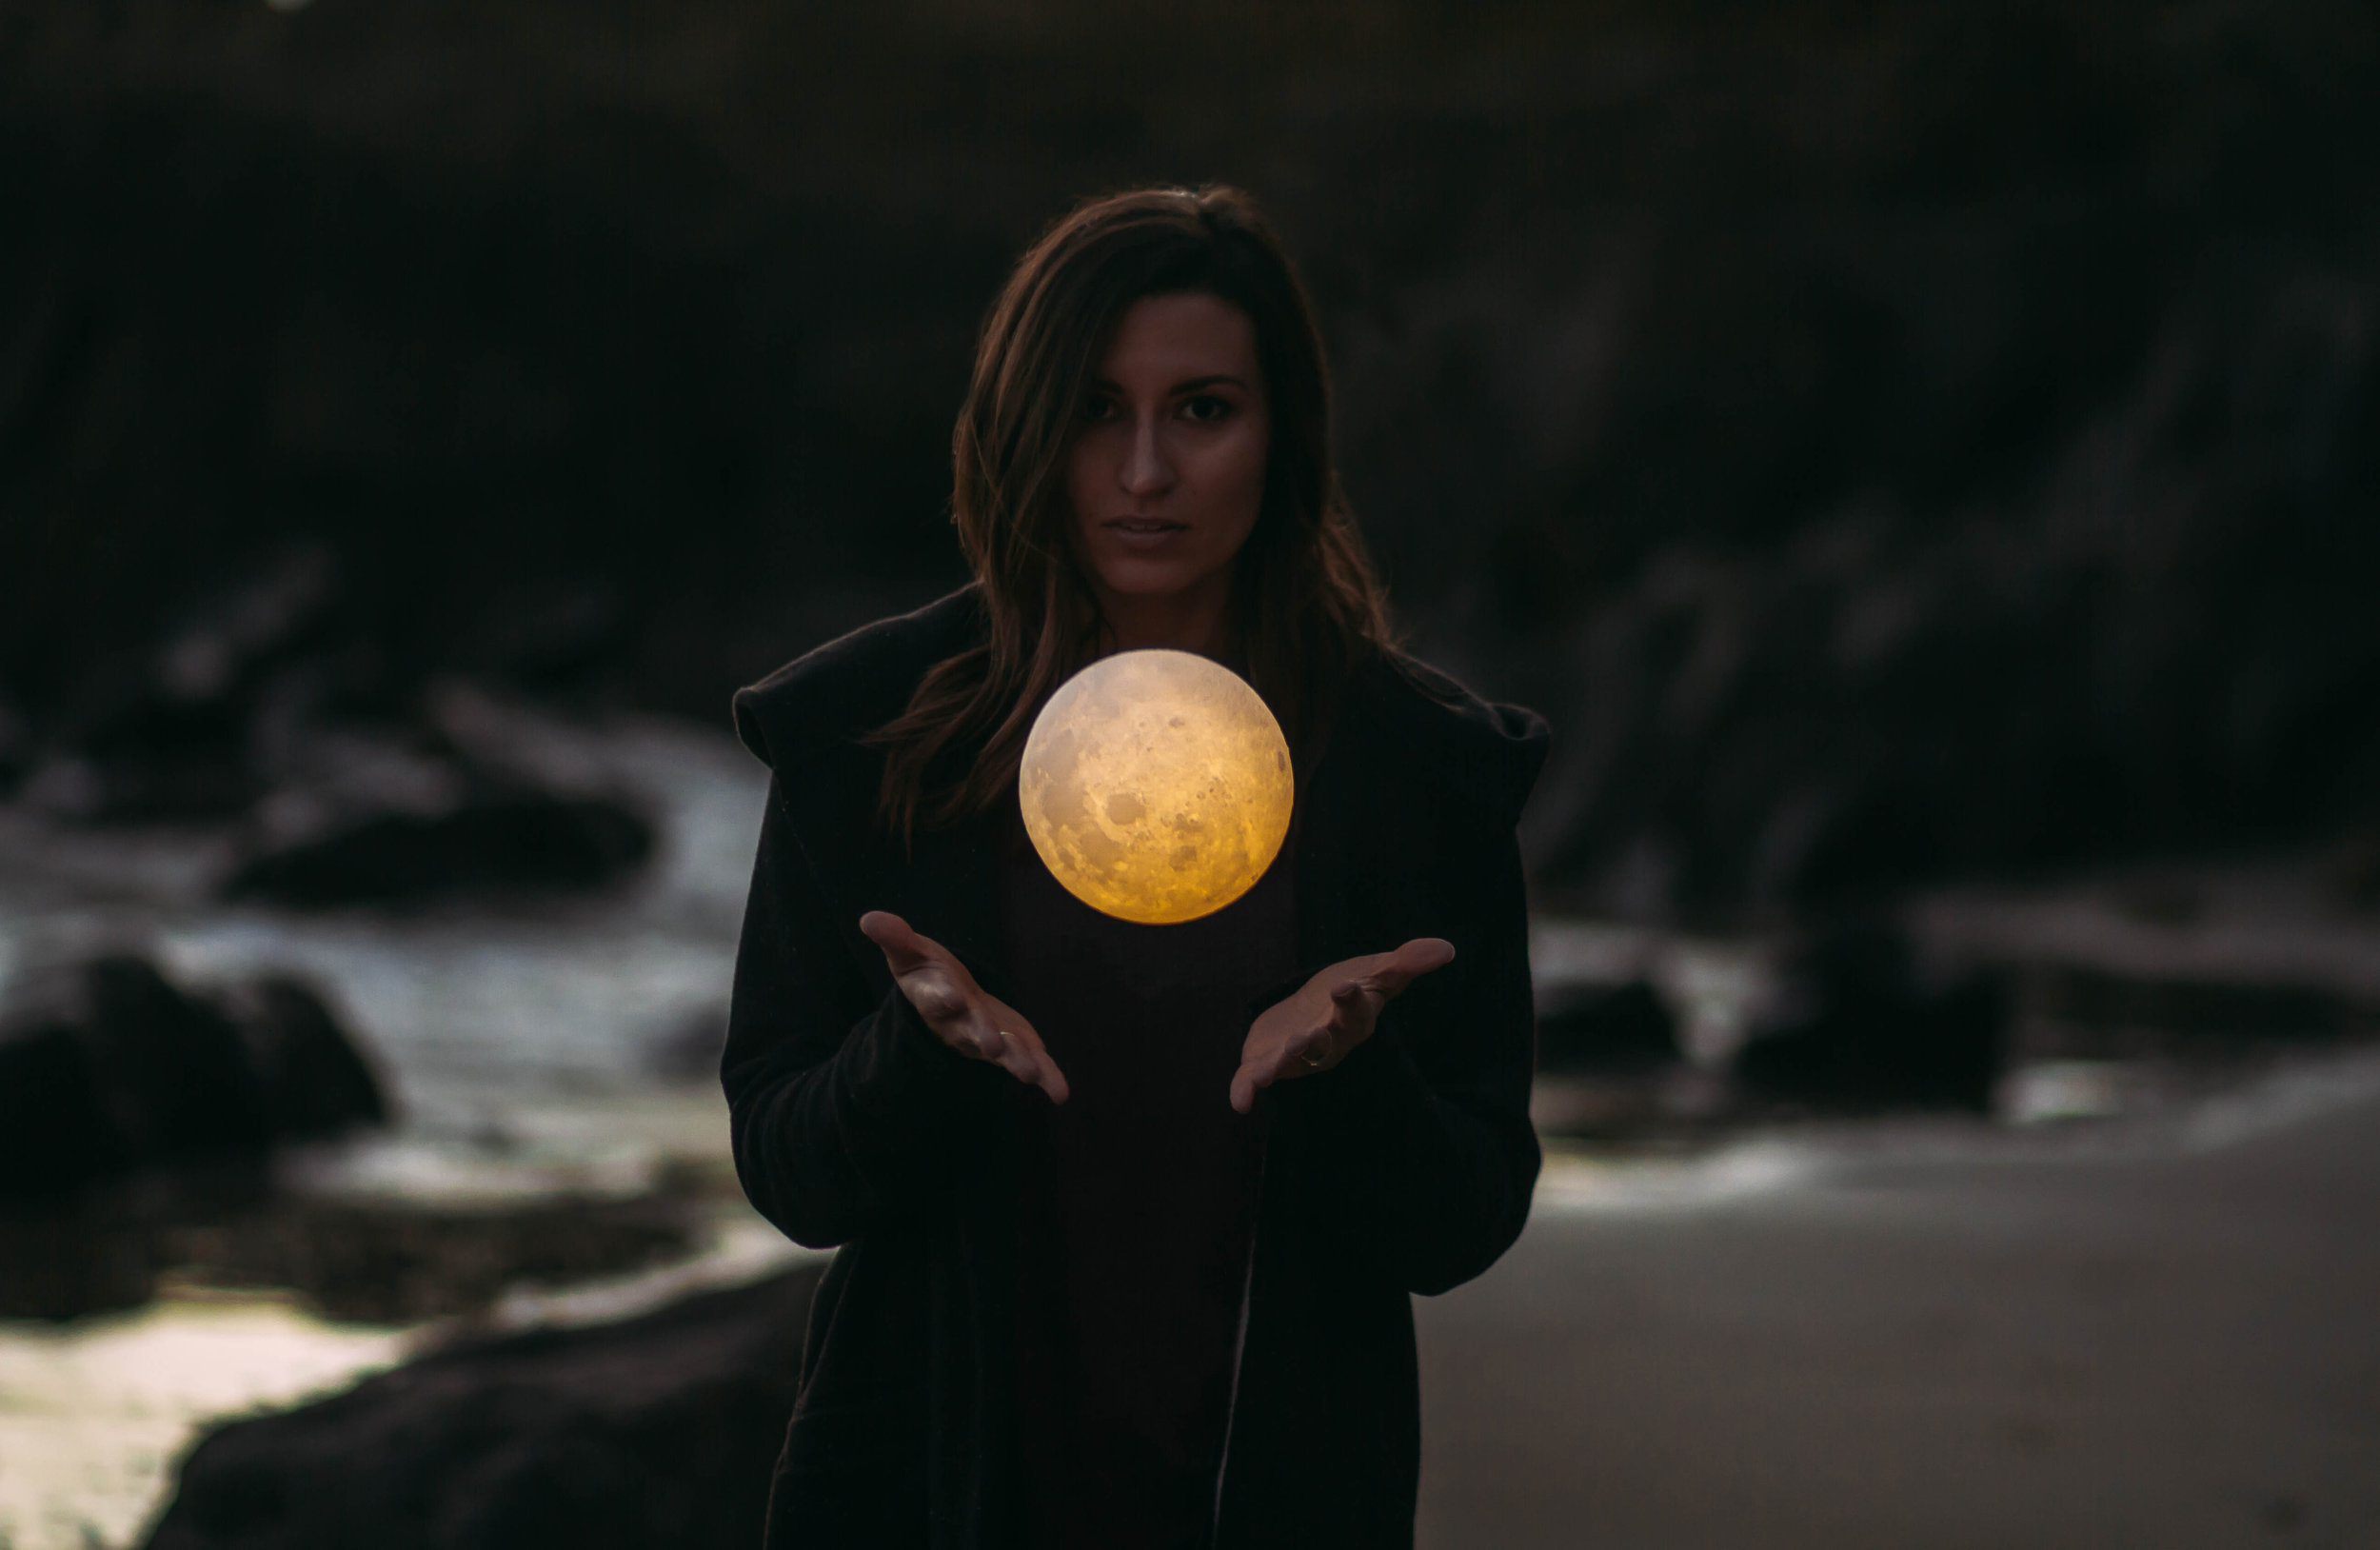 A person seemingly holding the moon above their hands